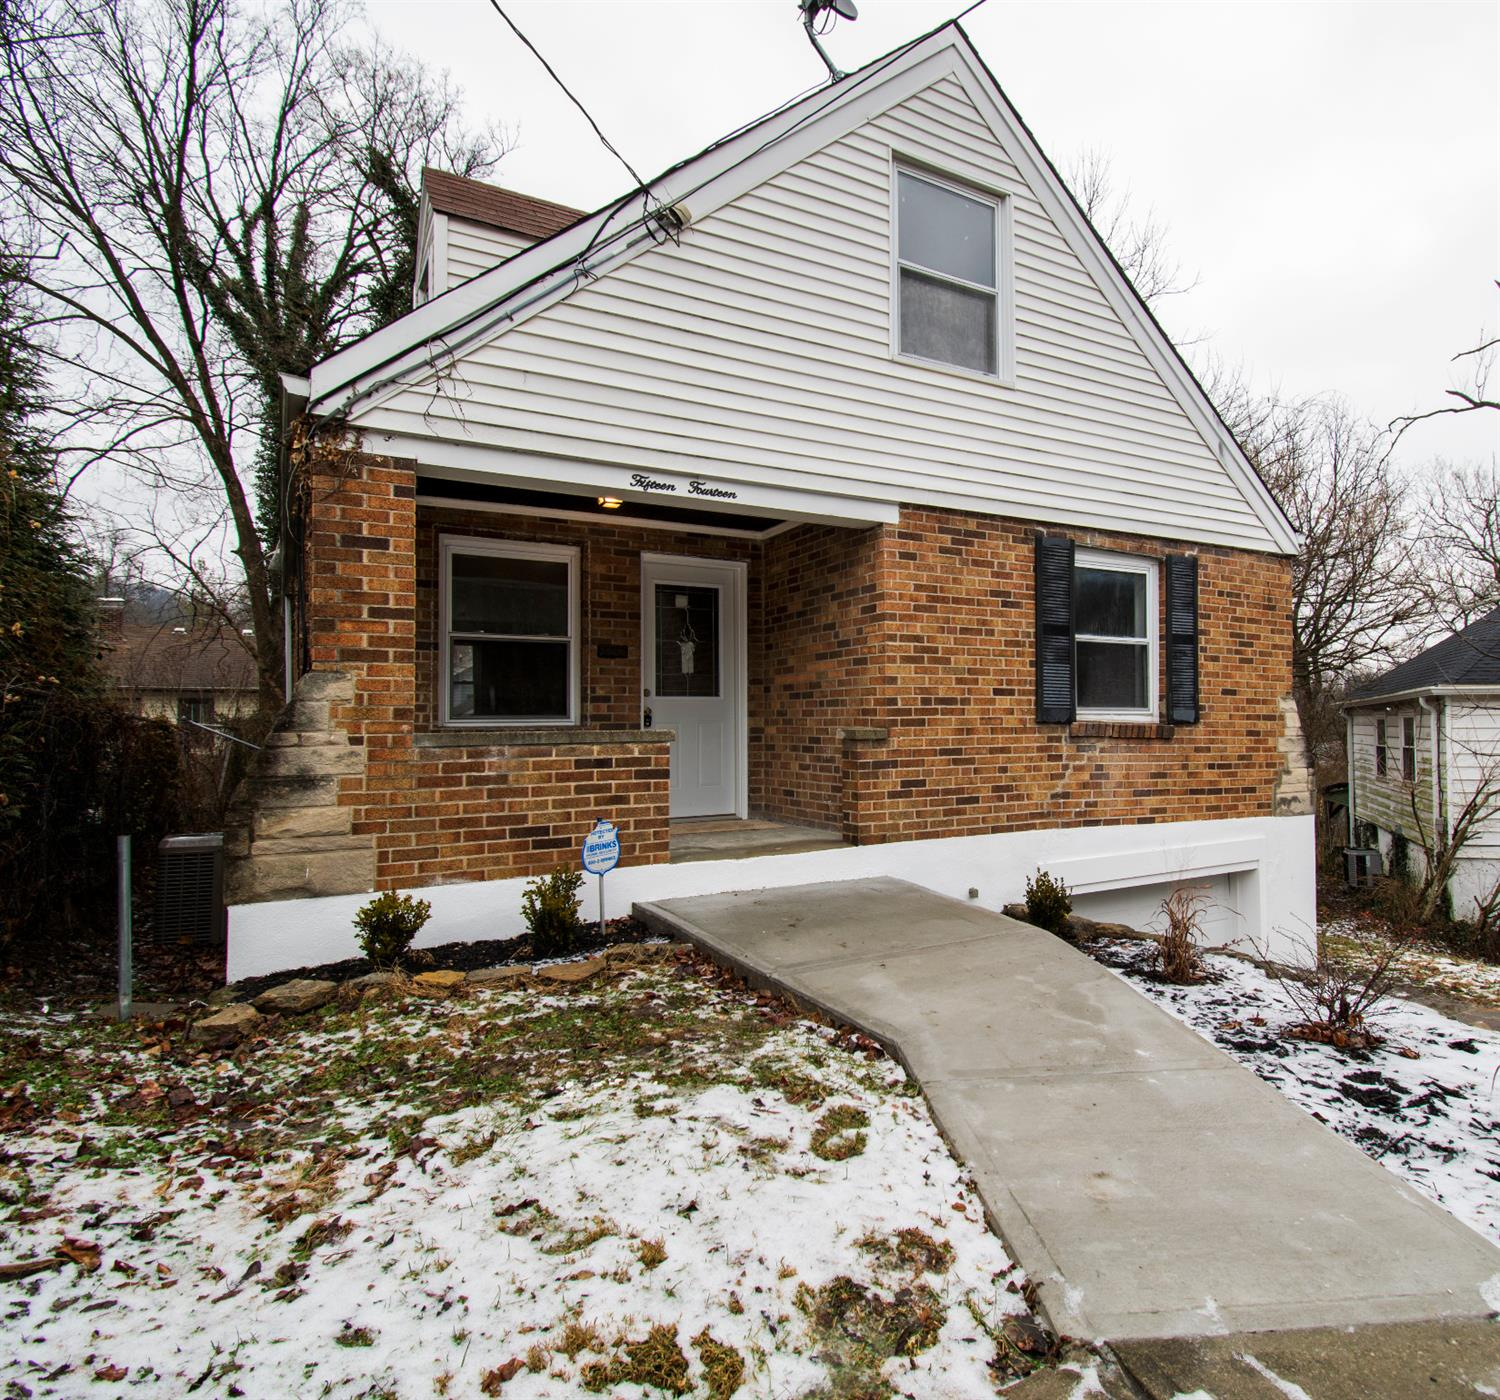 1514 Barvac Ave Northside, OH